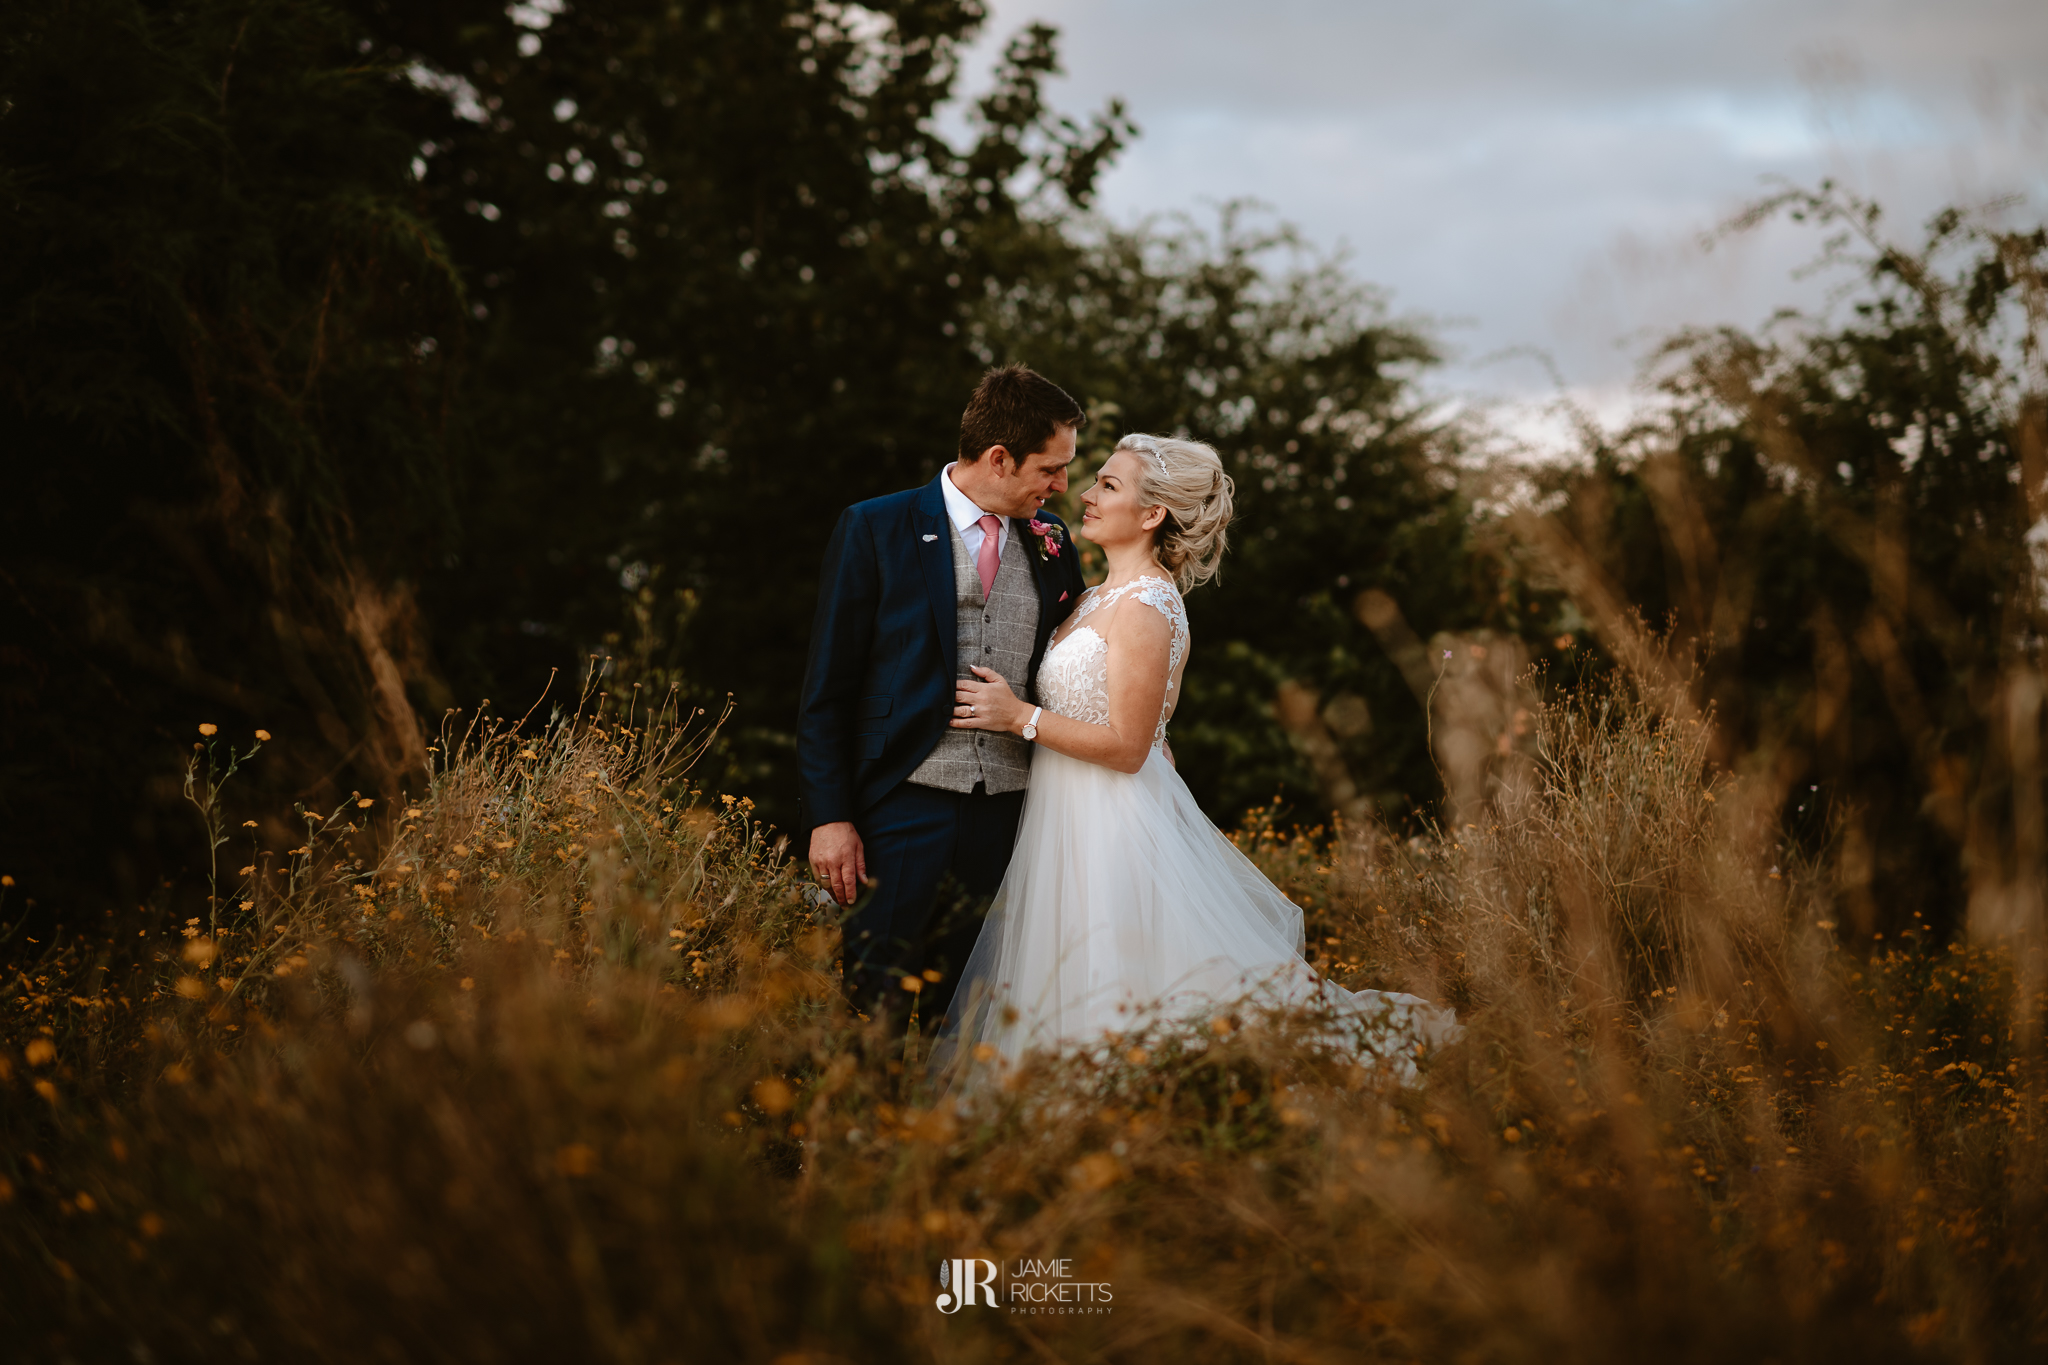 Wroxeter-Hotel-Wedding-Photography-In-Shropshire-By-Shropshire-Wedding-Photographer-Jamie-Ricketts-197.JPG